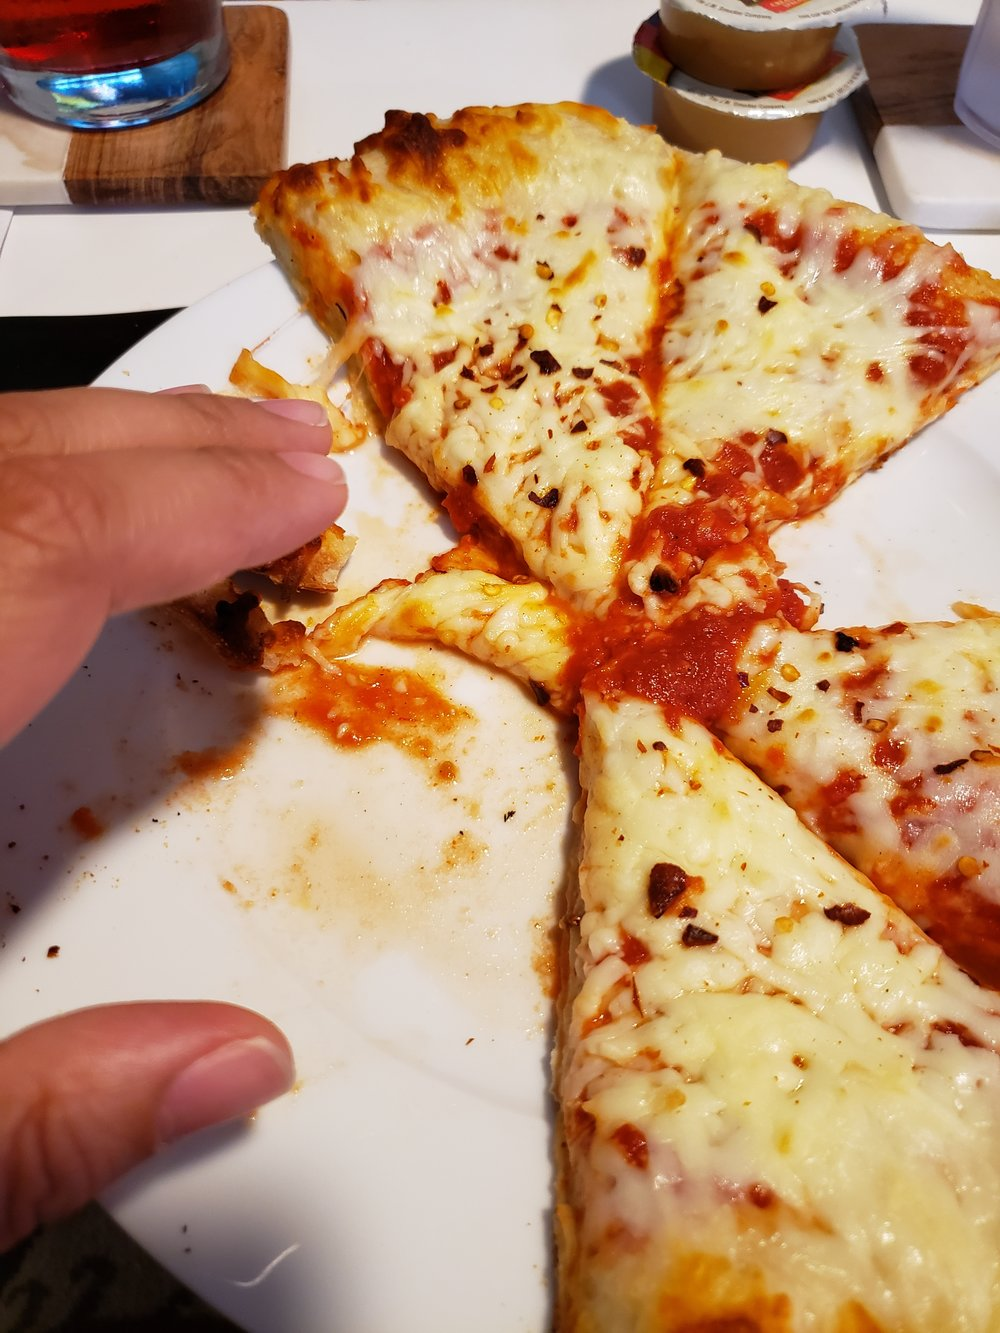 This left side of the pizza where my hand is